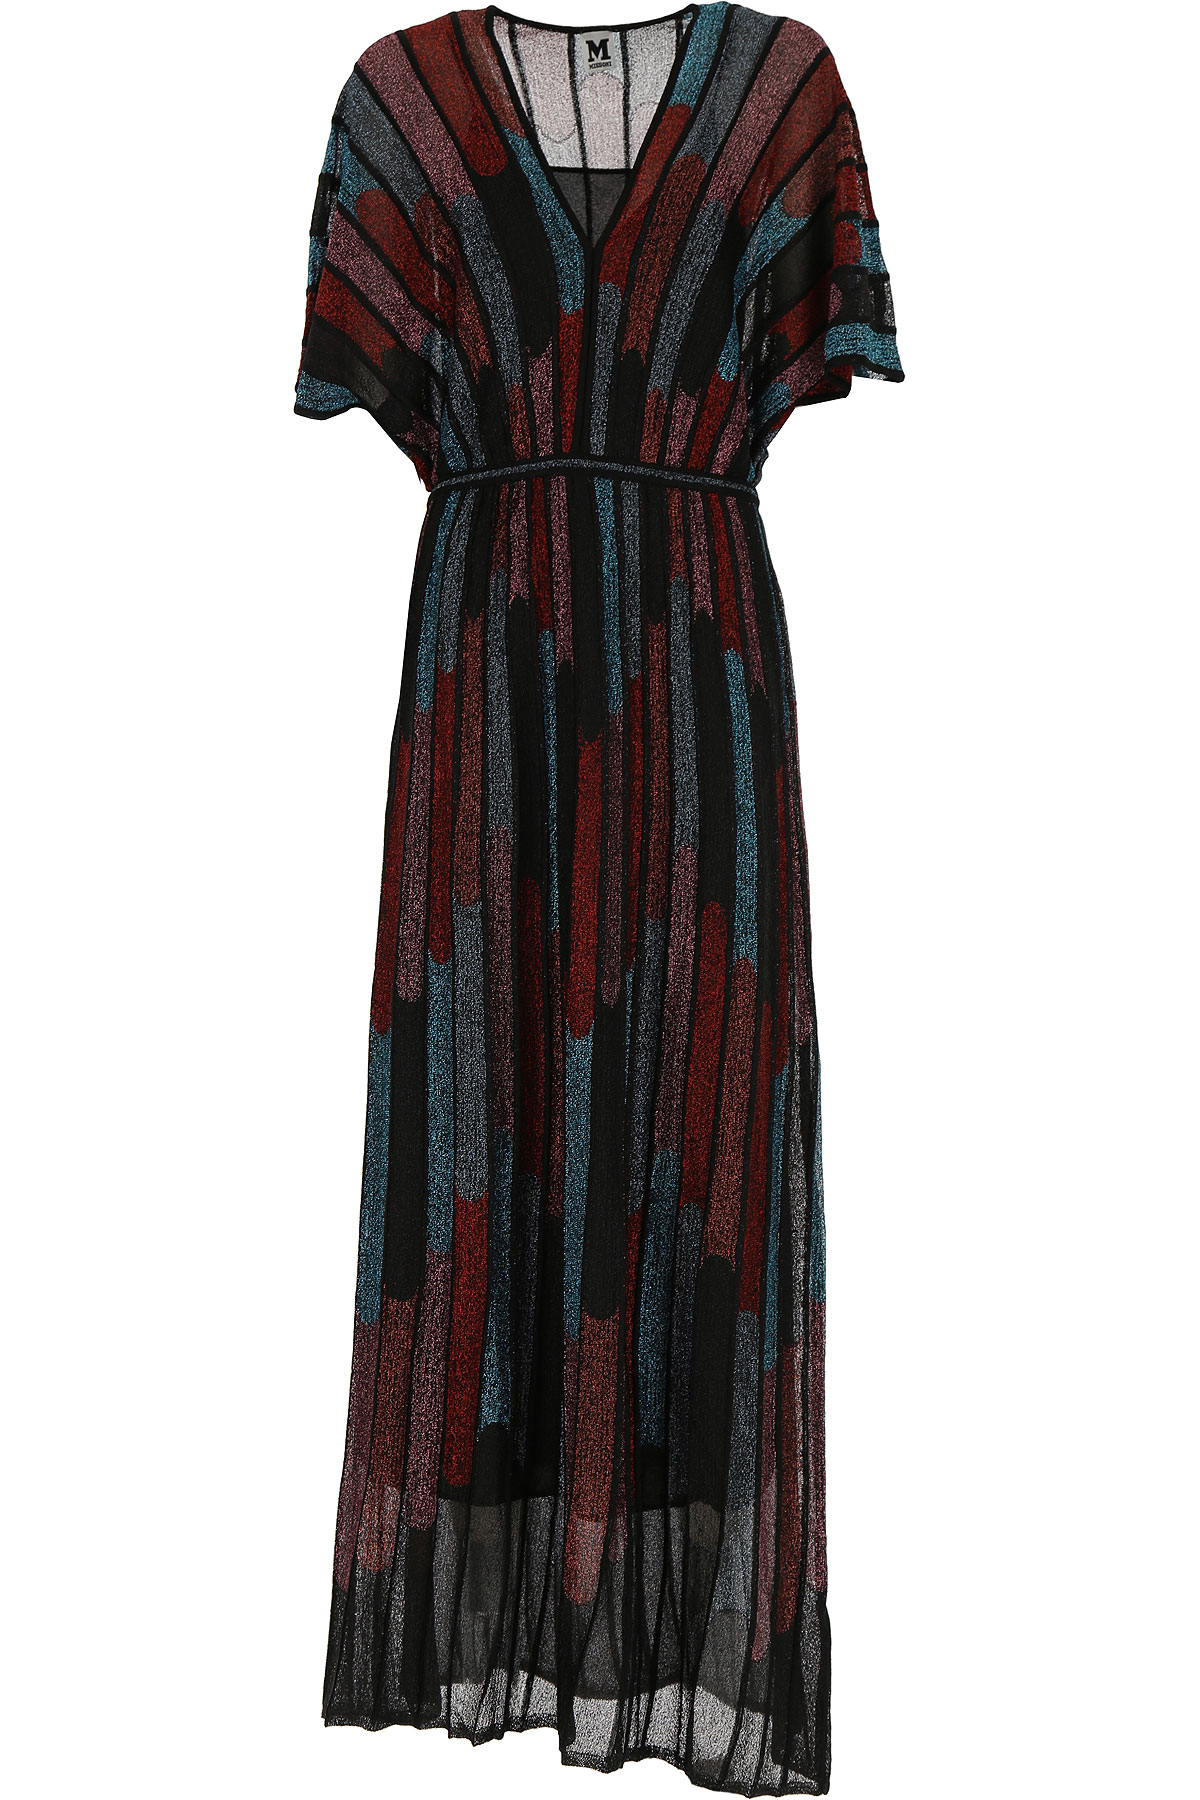 Missoni Dress for Women, Evening Cocktail Party On Sale, Multicolor, viscosa, 2019, 4 6